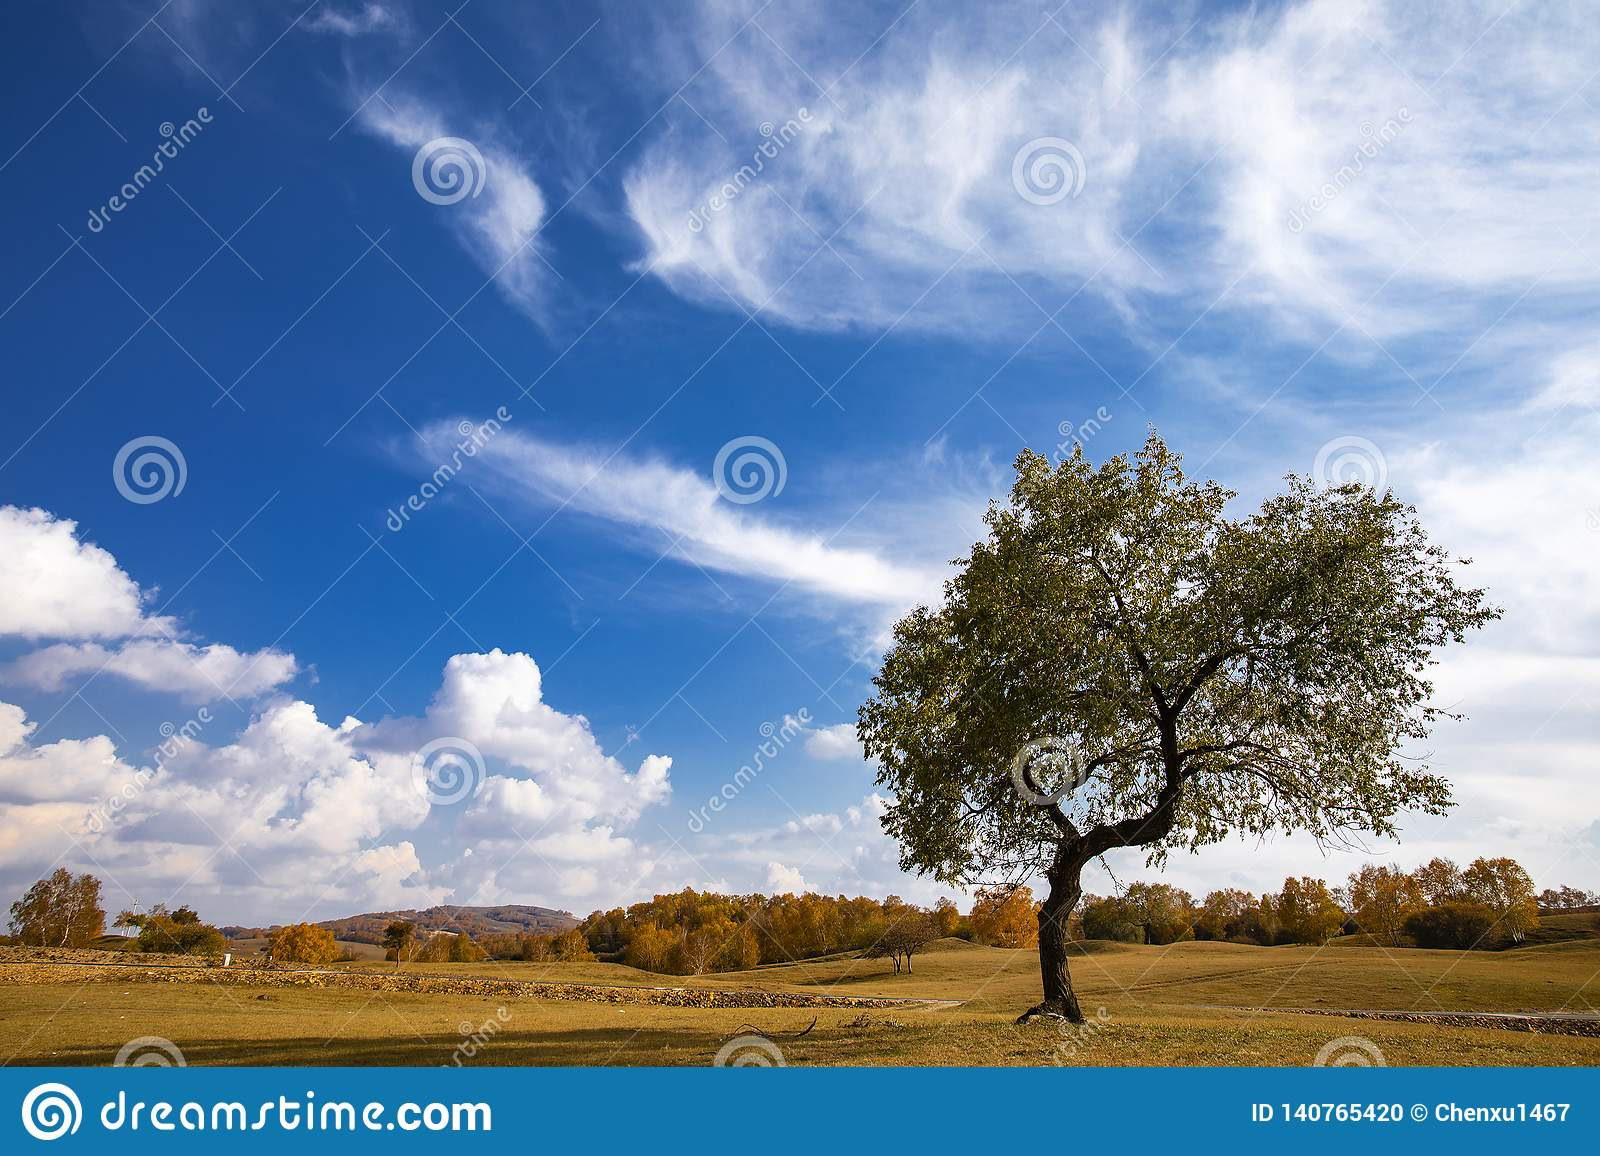 Autumn colors under the blue sky and white clouds